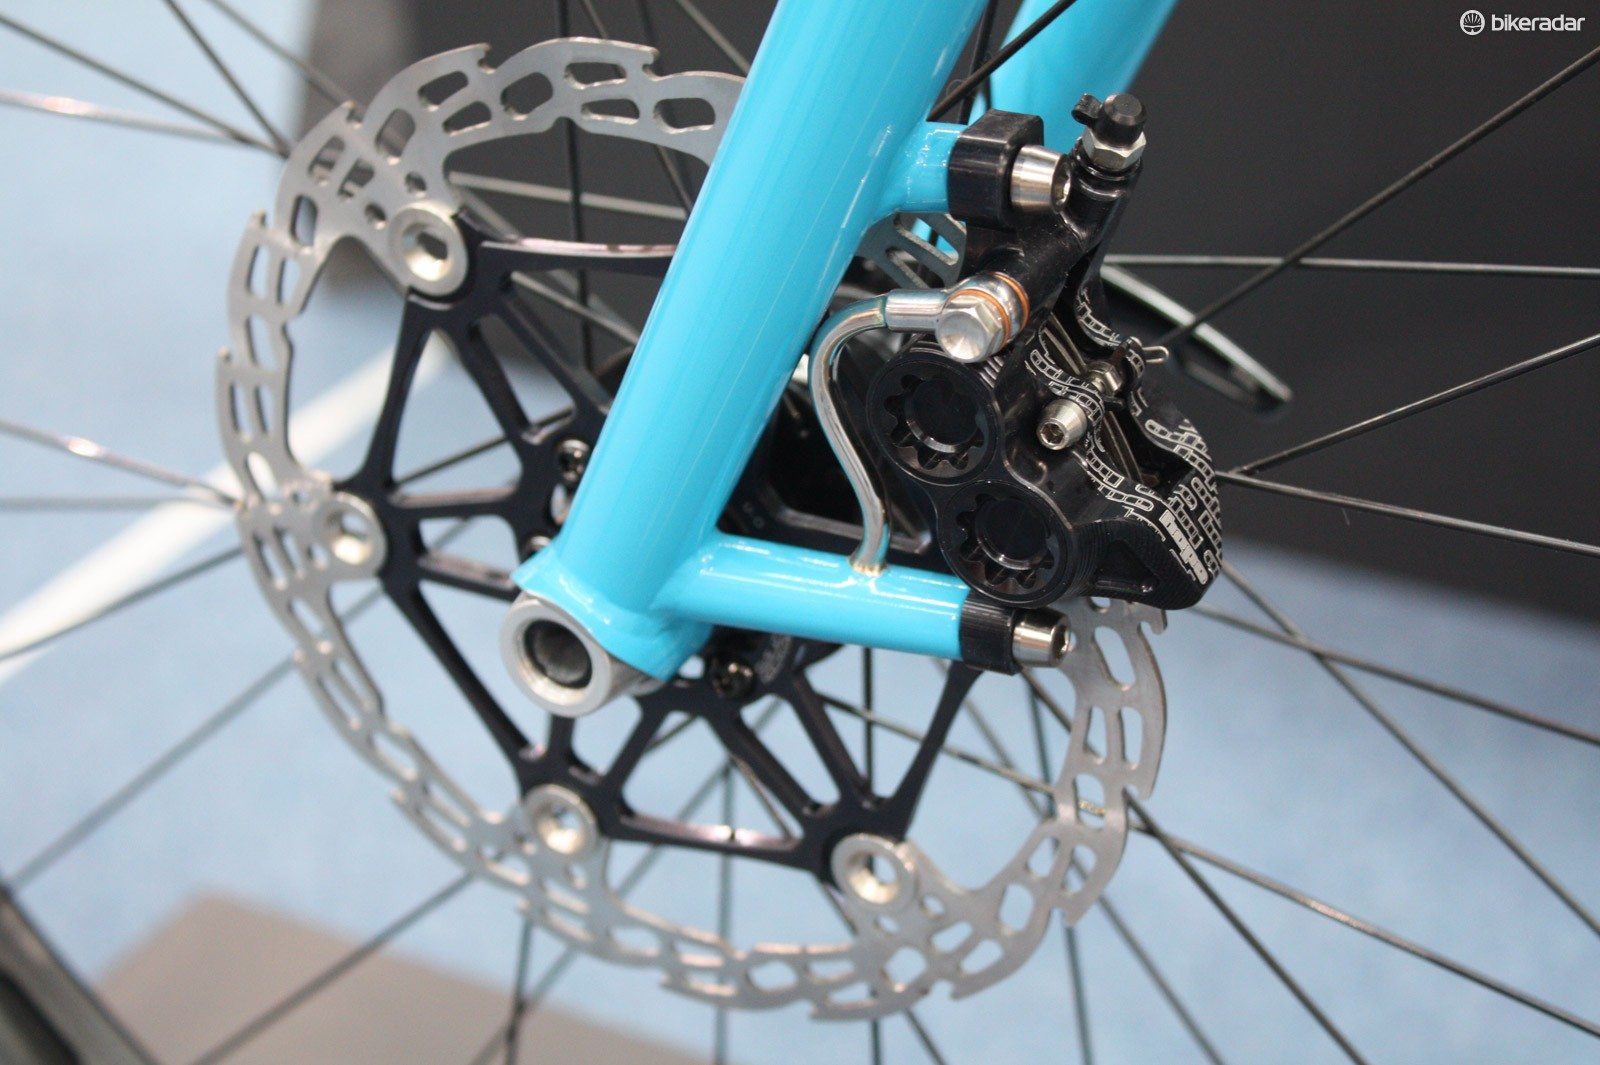 The custom fork neatly integrates the hydraulic lines that lead to the Hope four-pot caliper